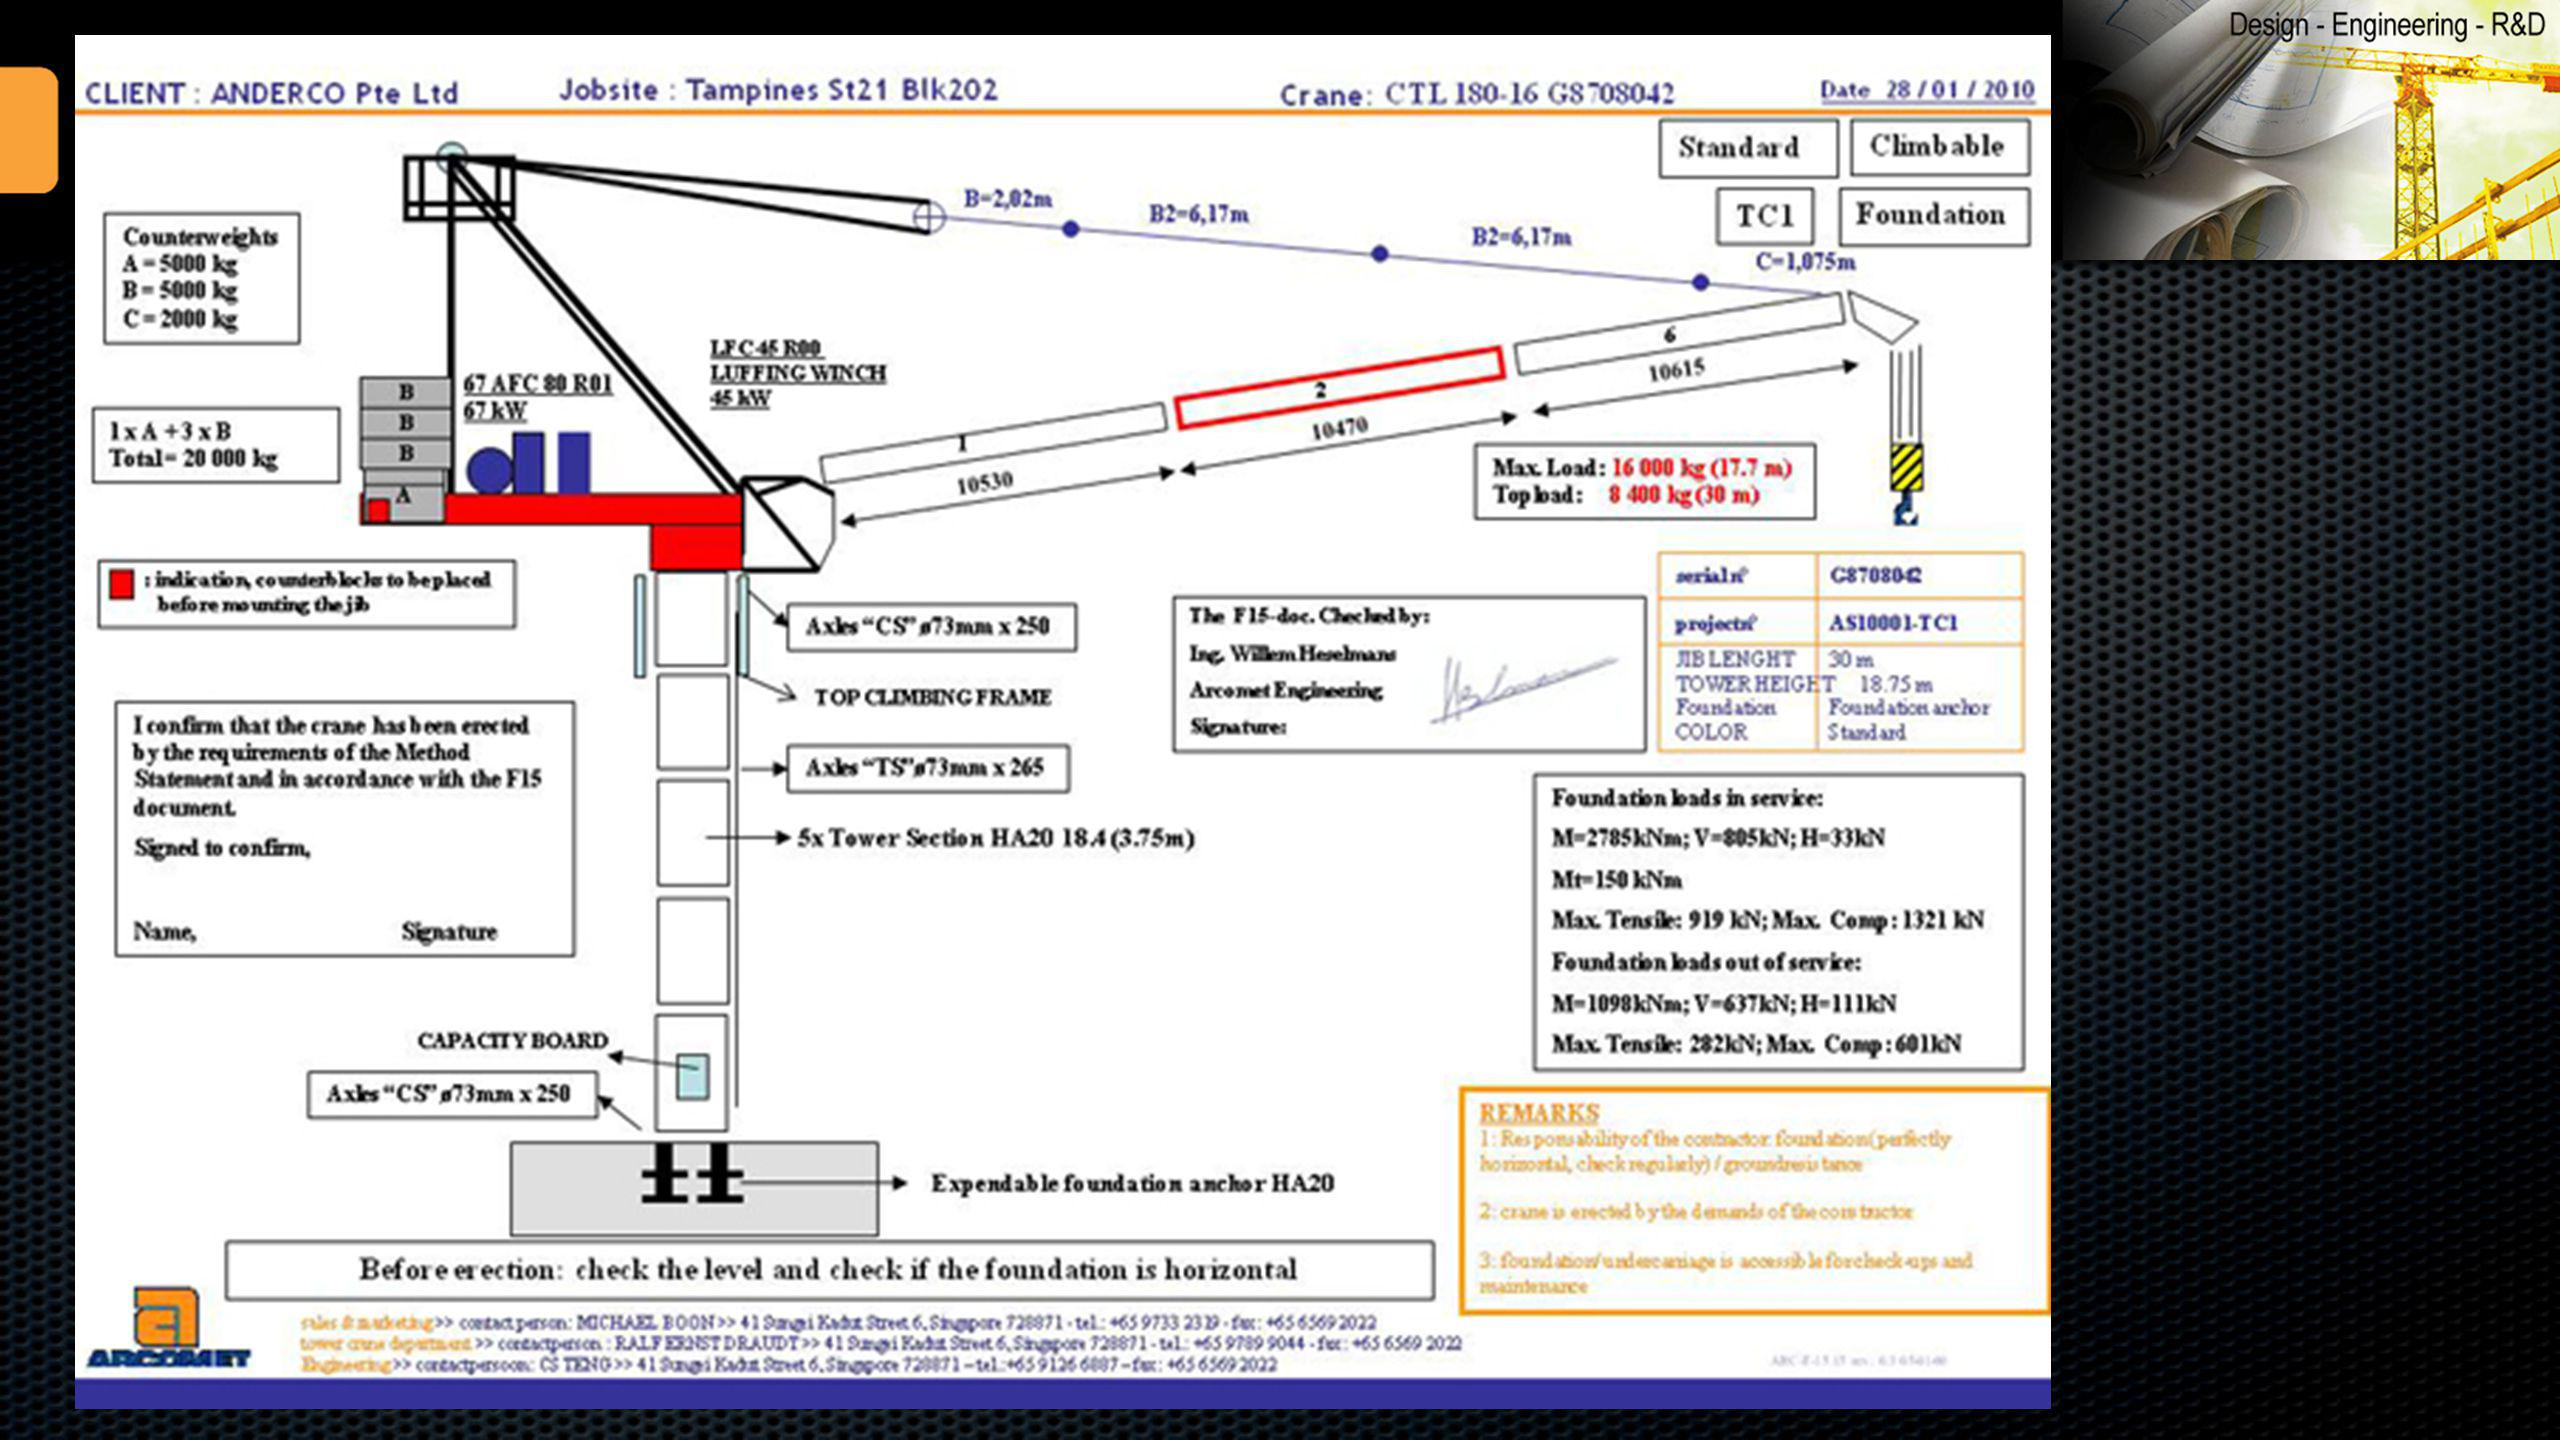 Design of the F15 document